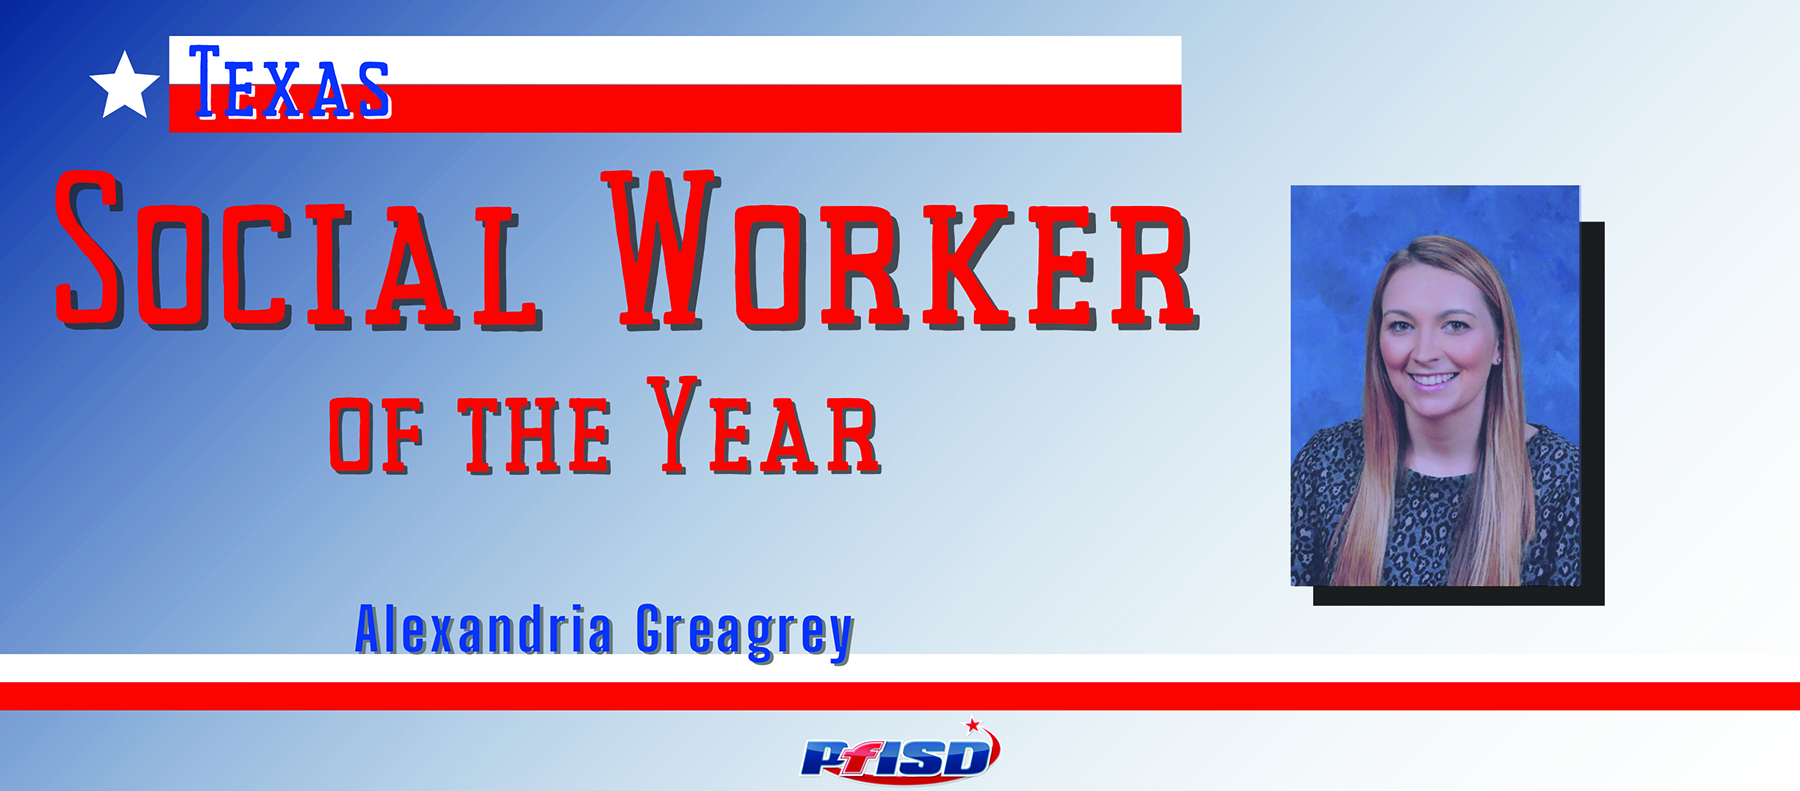 Texas School Social Worker of the Year